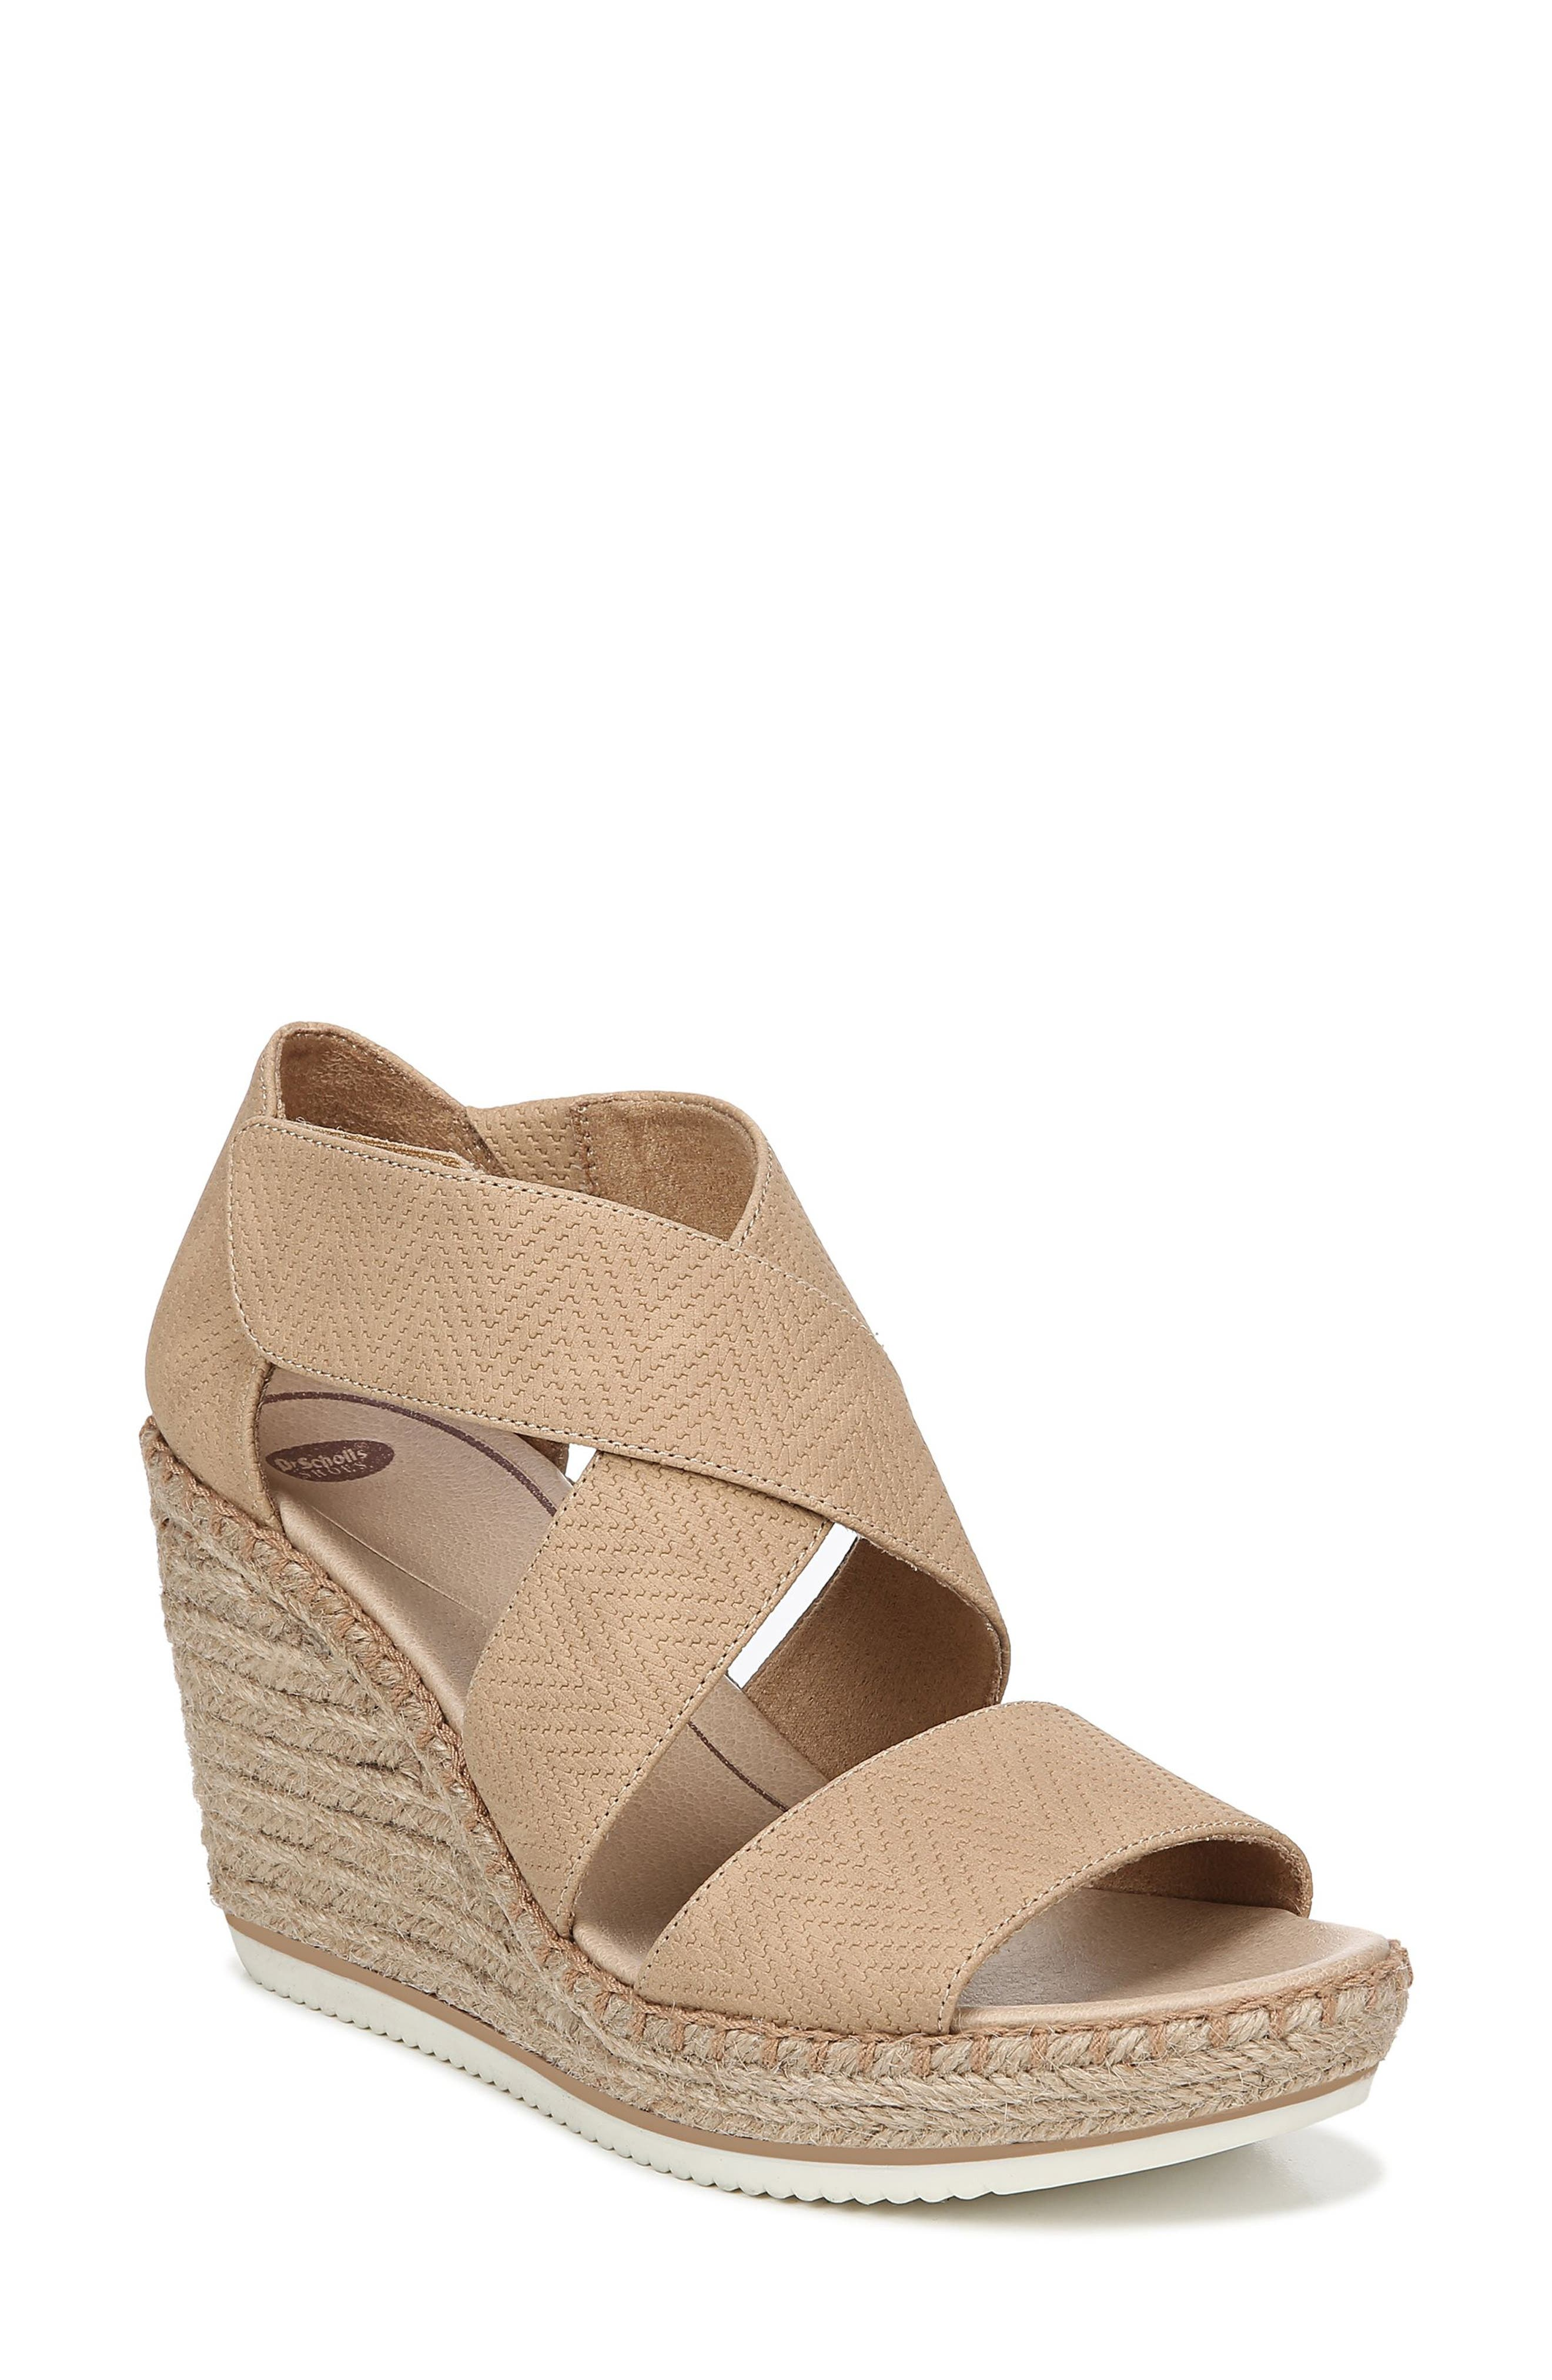 Dr. Scholl's Vacay Wedge Sandal (Women)